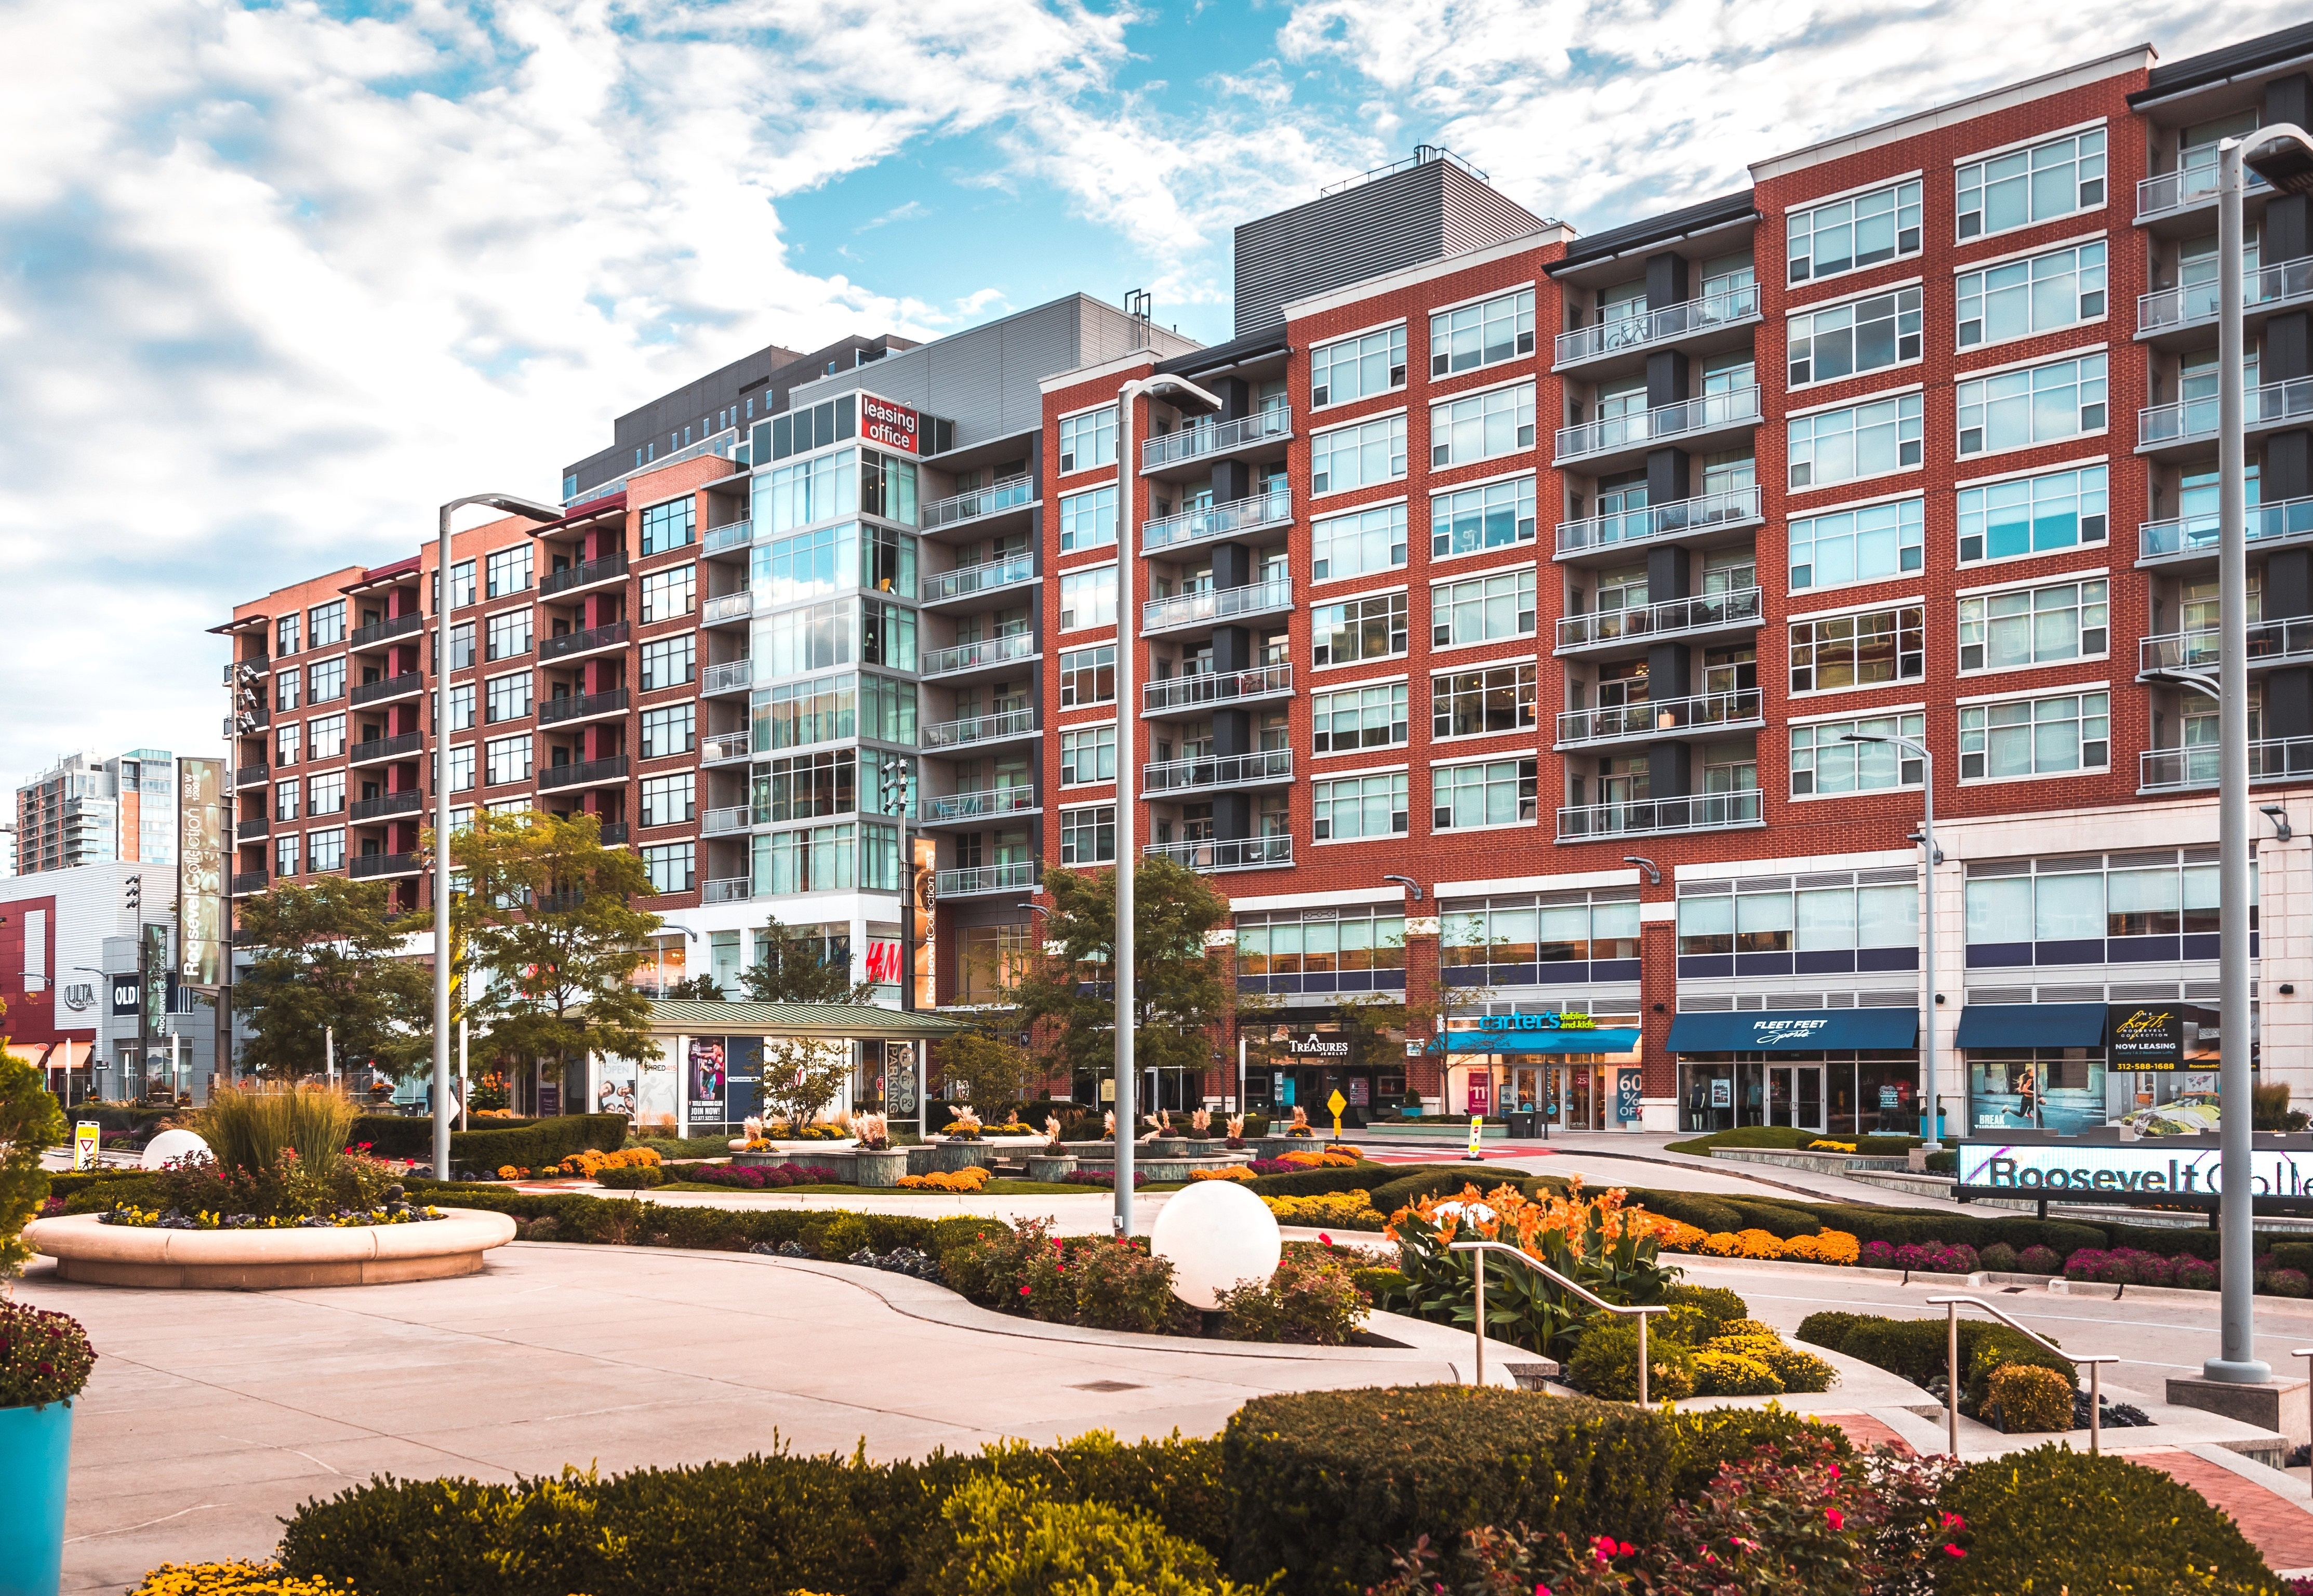 An outdoor shoot of a lifestyle center with residential units.